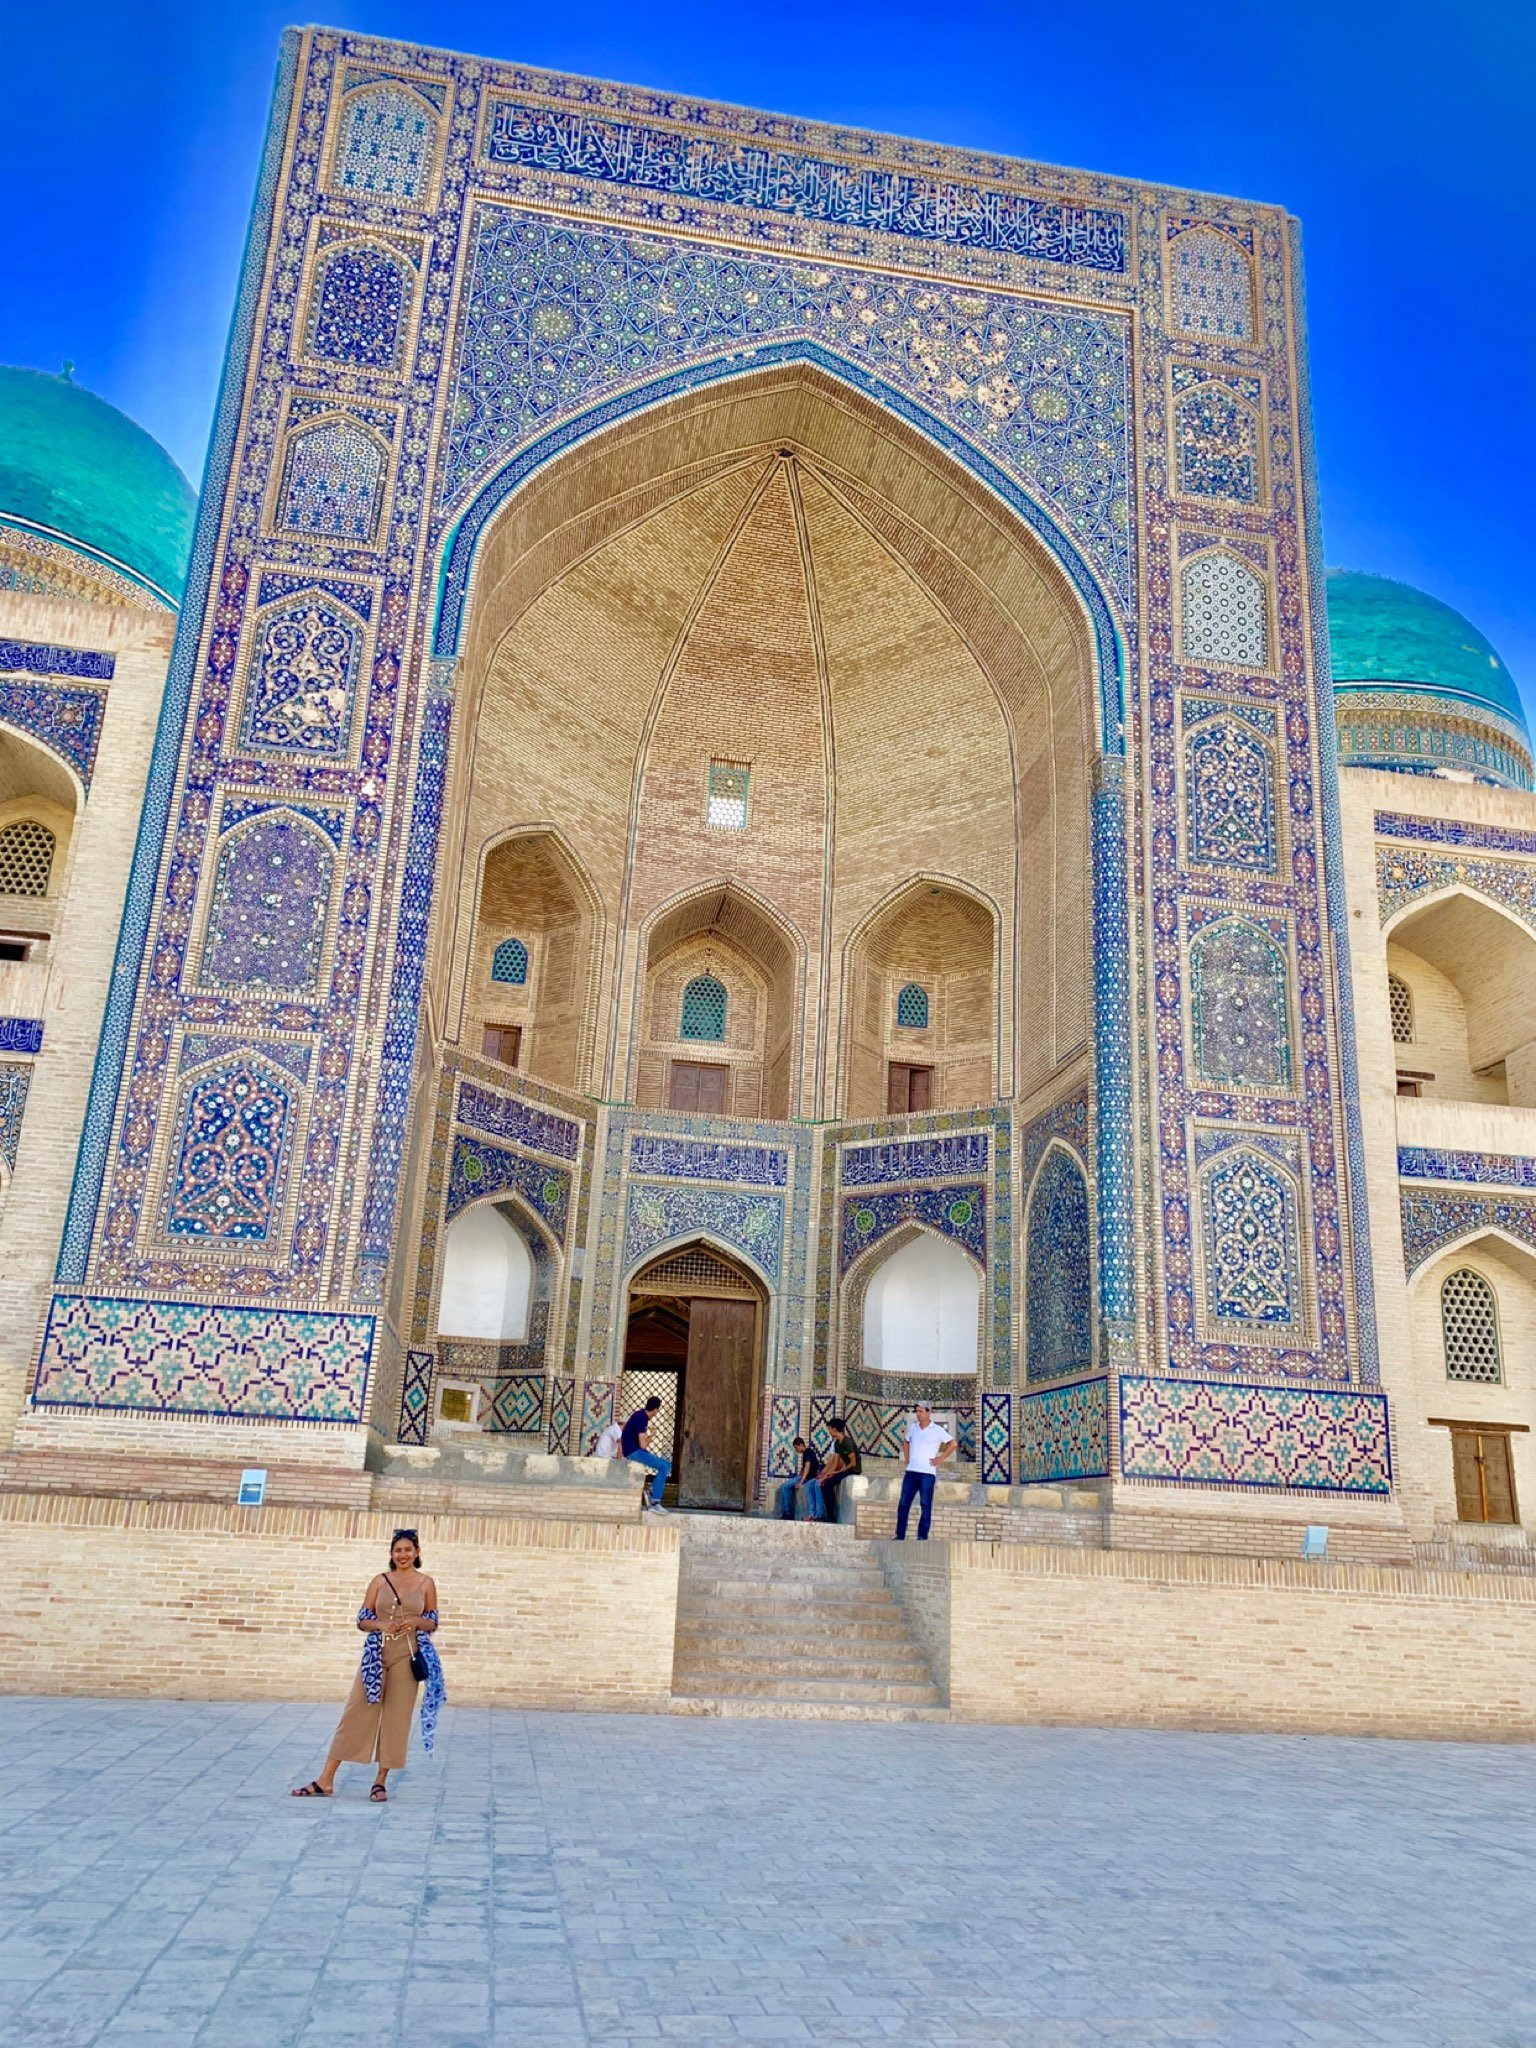 Kach Solo Travels in 2019 My last 2 days in Uzbekistan13.jpg